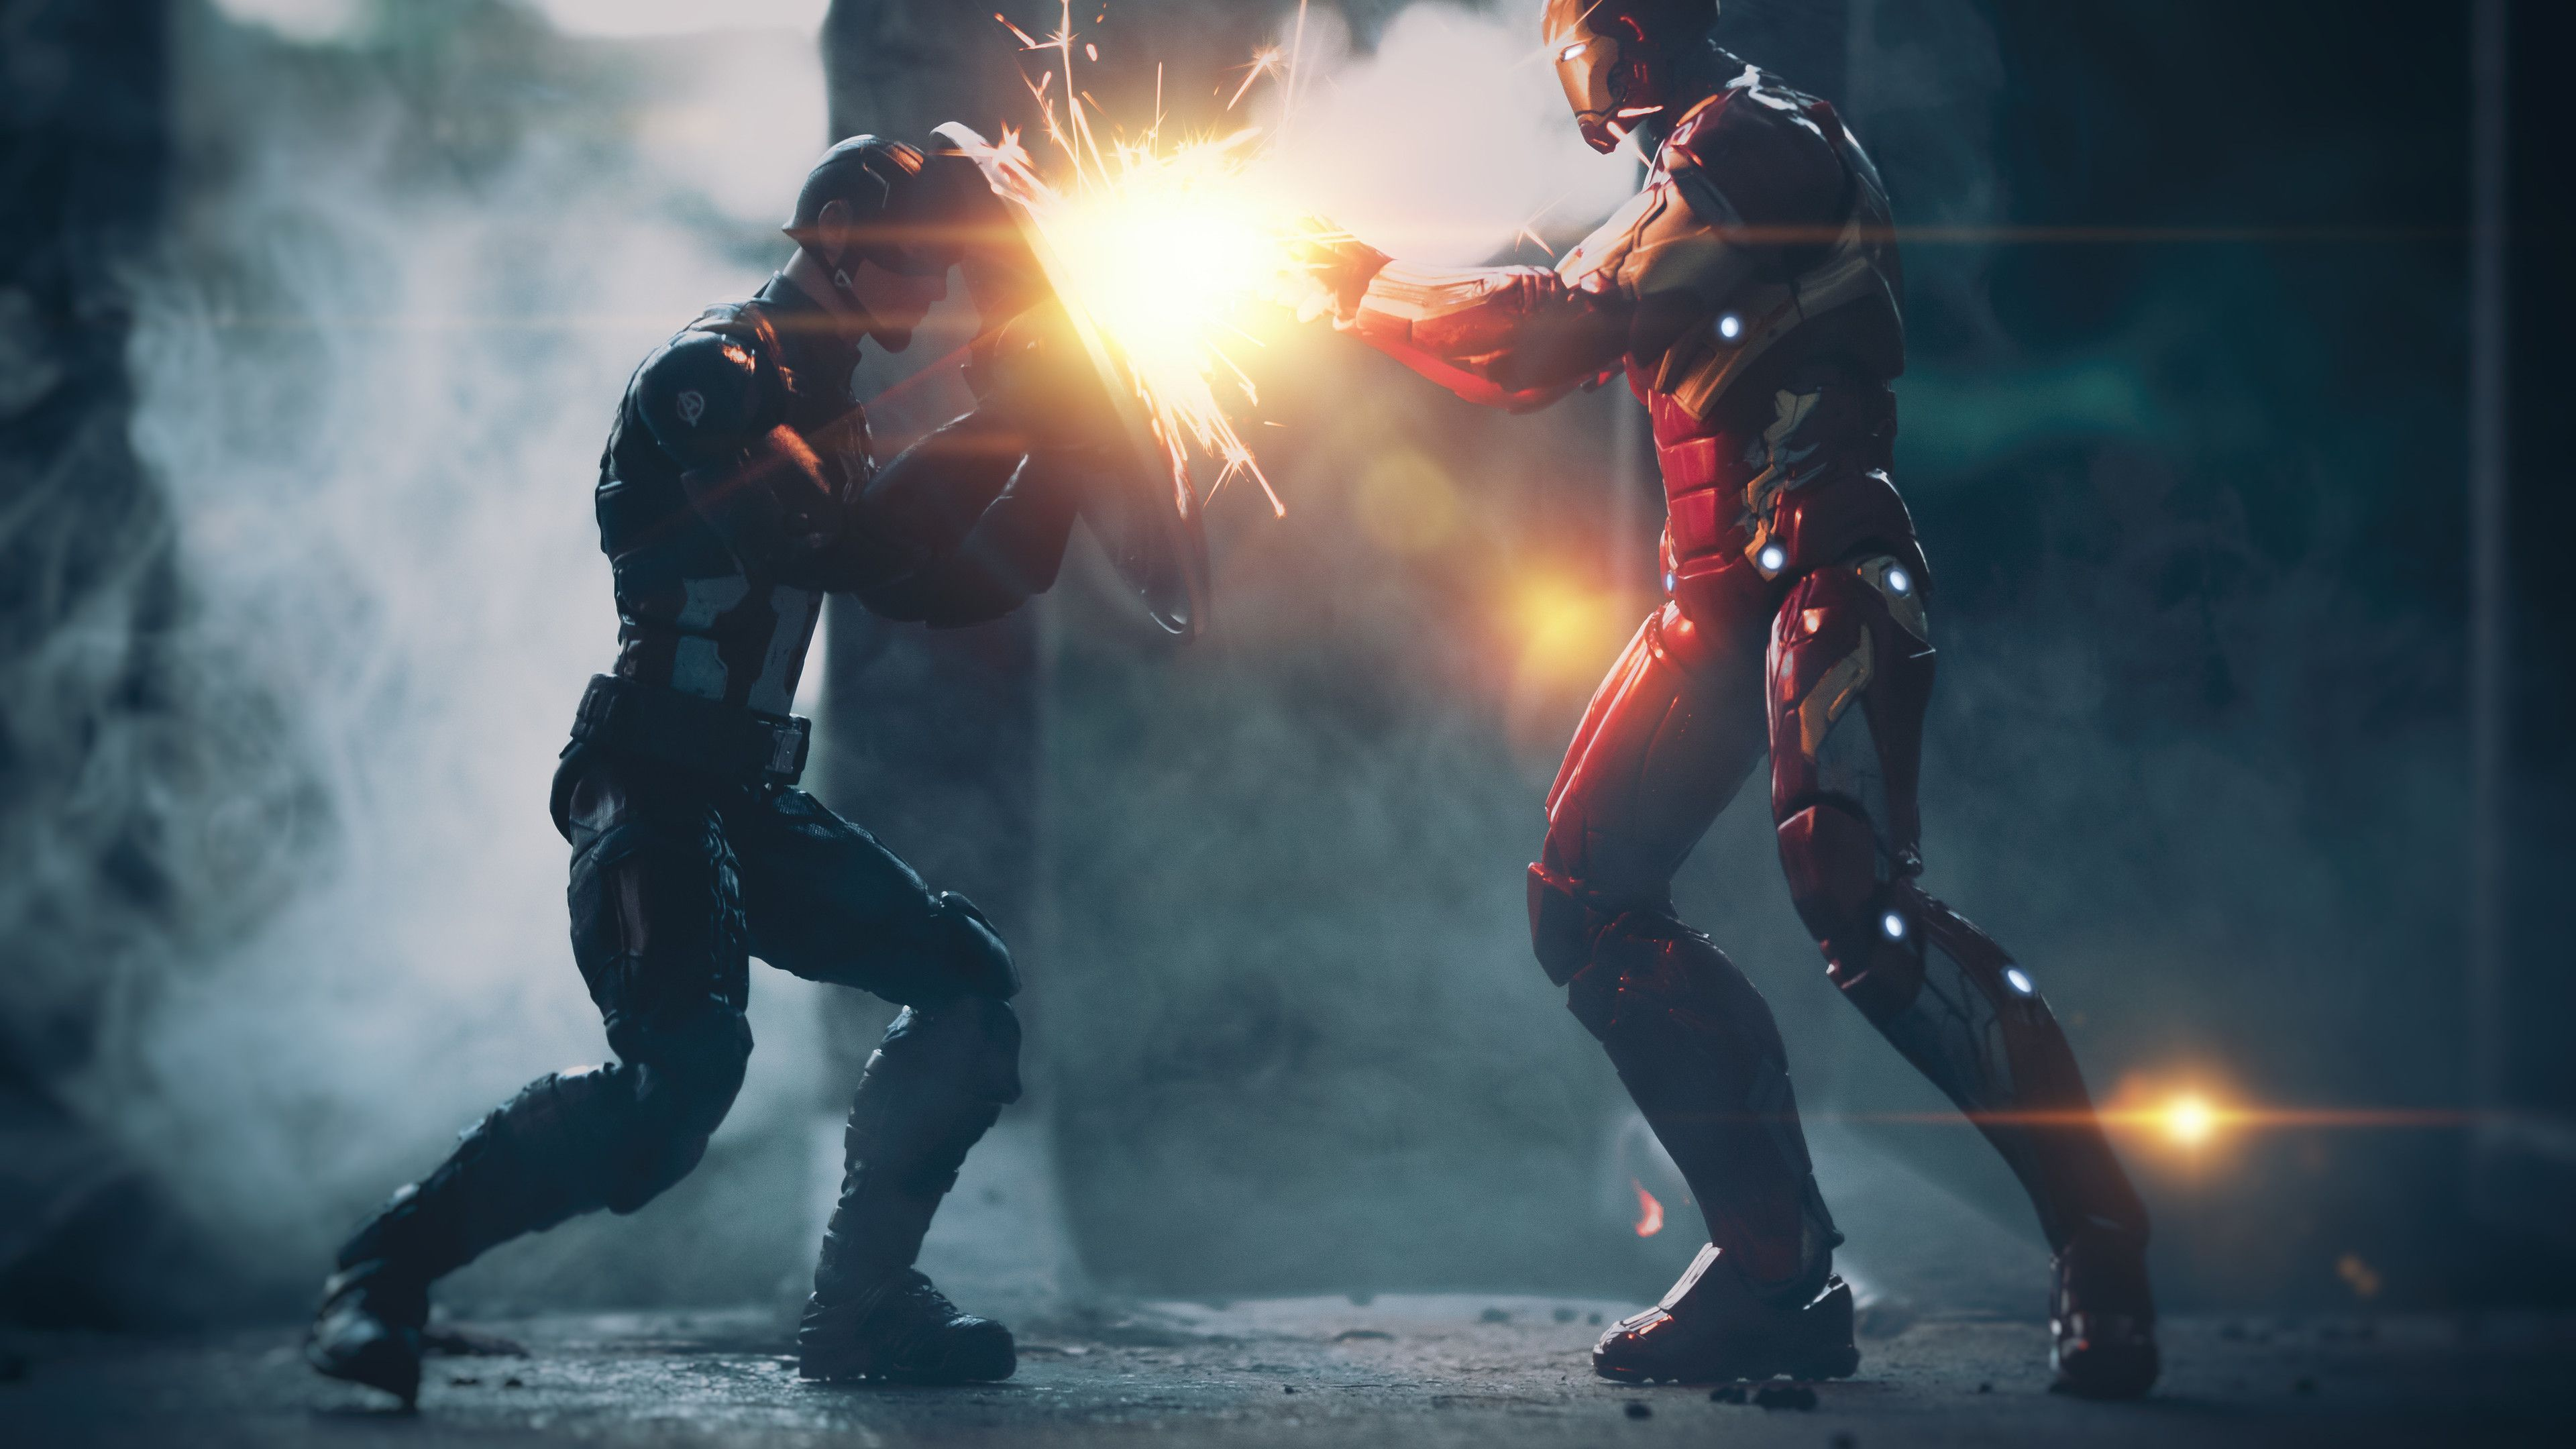 Captain America Vs Iron Man Artwork 5k Iron Man Vs Captain America Captain America Wallpaper Iron Man Wallpaper